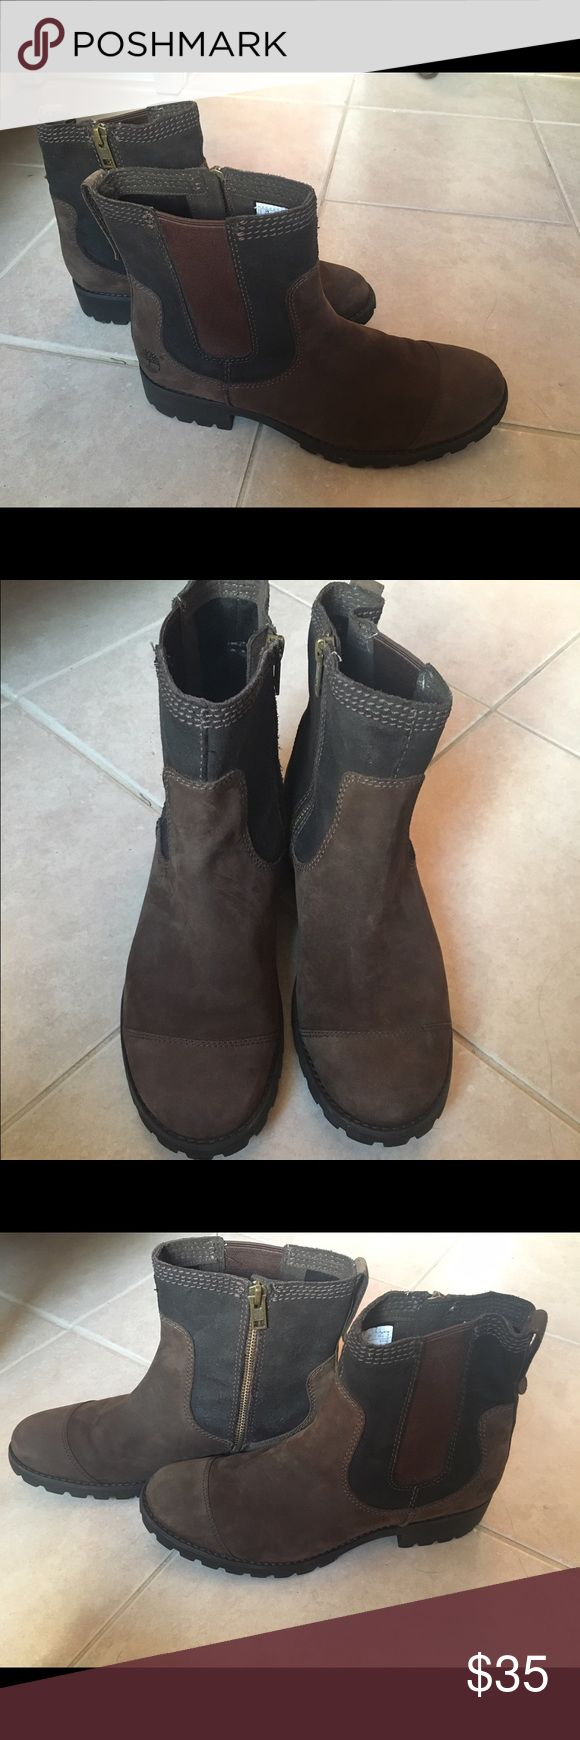 Timberland women's femme atrus chelsea Boot Sz 9.5 Beautiful pair of boots that look amazing with jeans. Great for all occasions! Wore on a trip to New York and were put away. Size 9.5 Timberland Shoes Ankle Boots & Booties